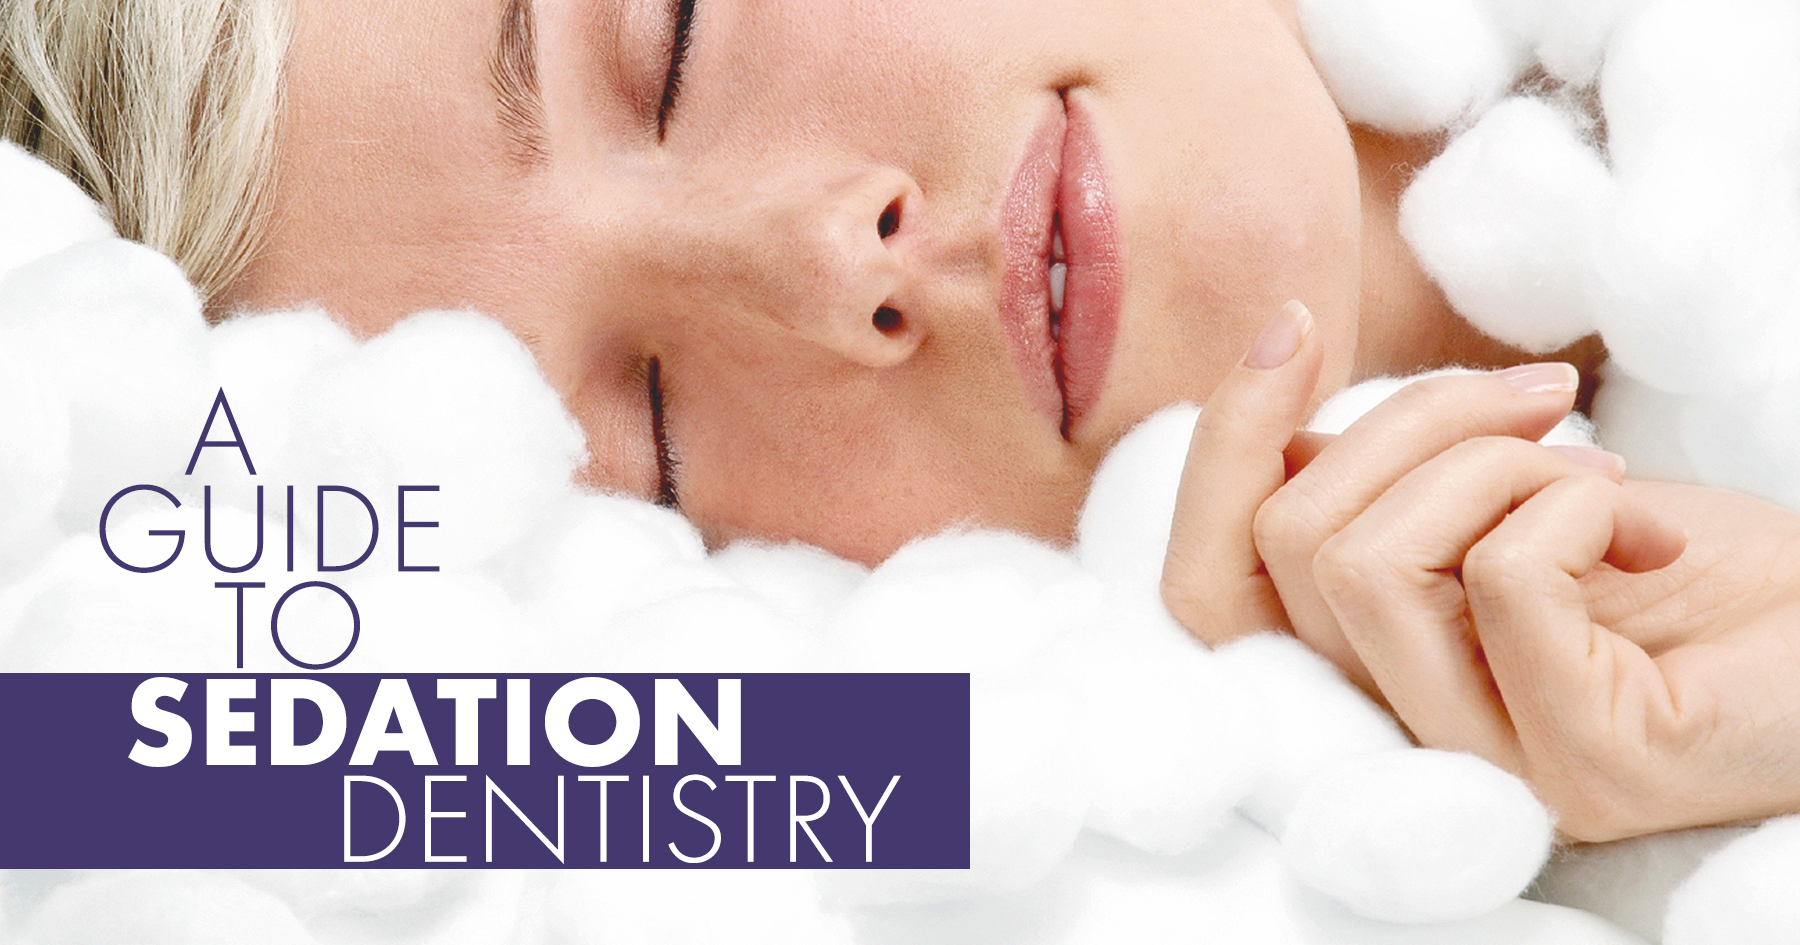 Guide to Sedation Dentistry